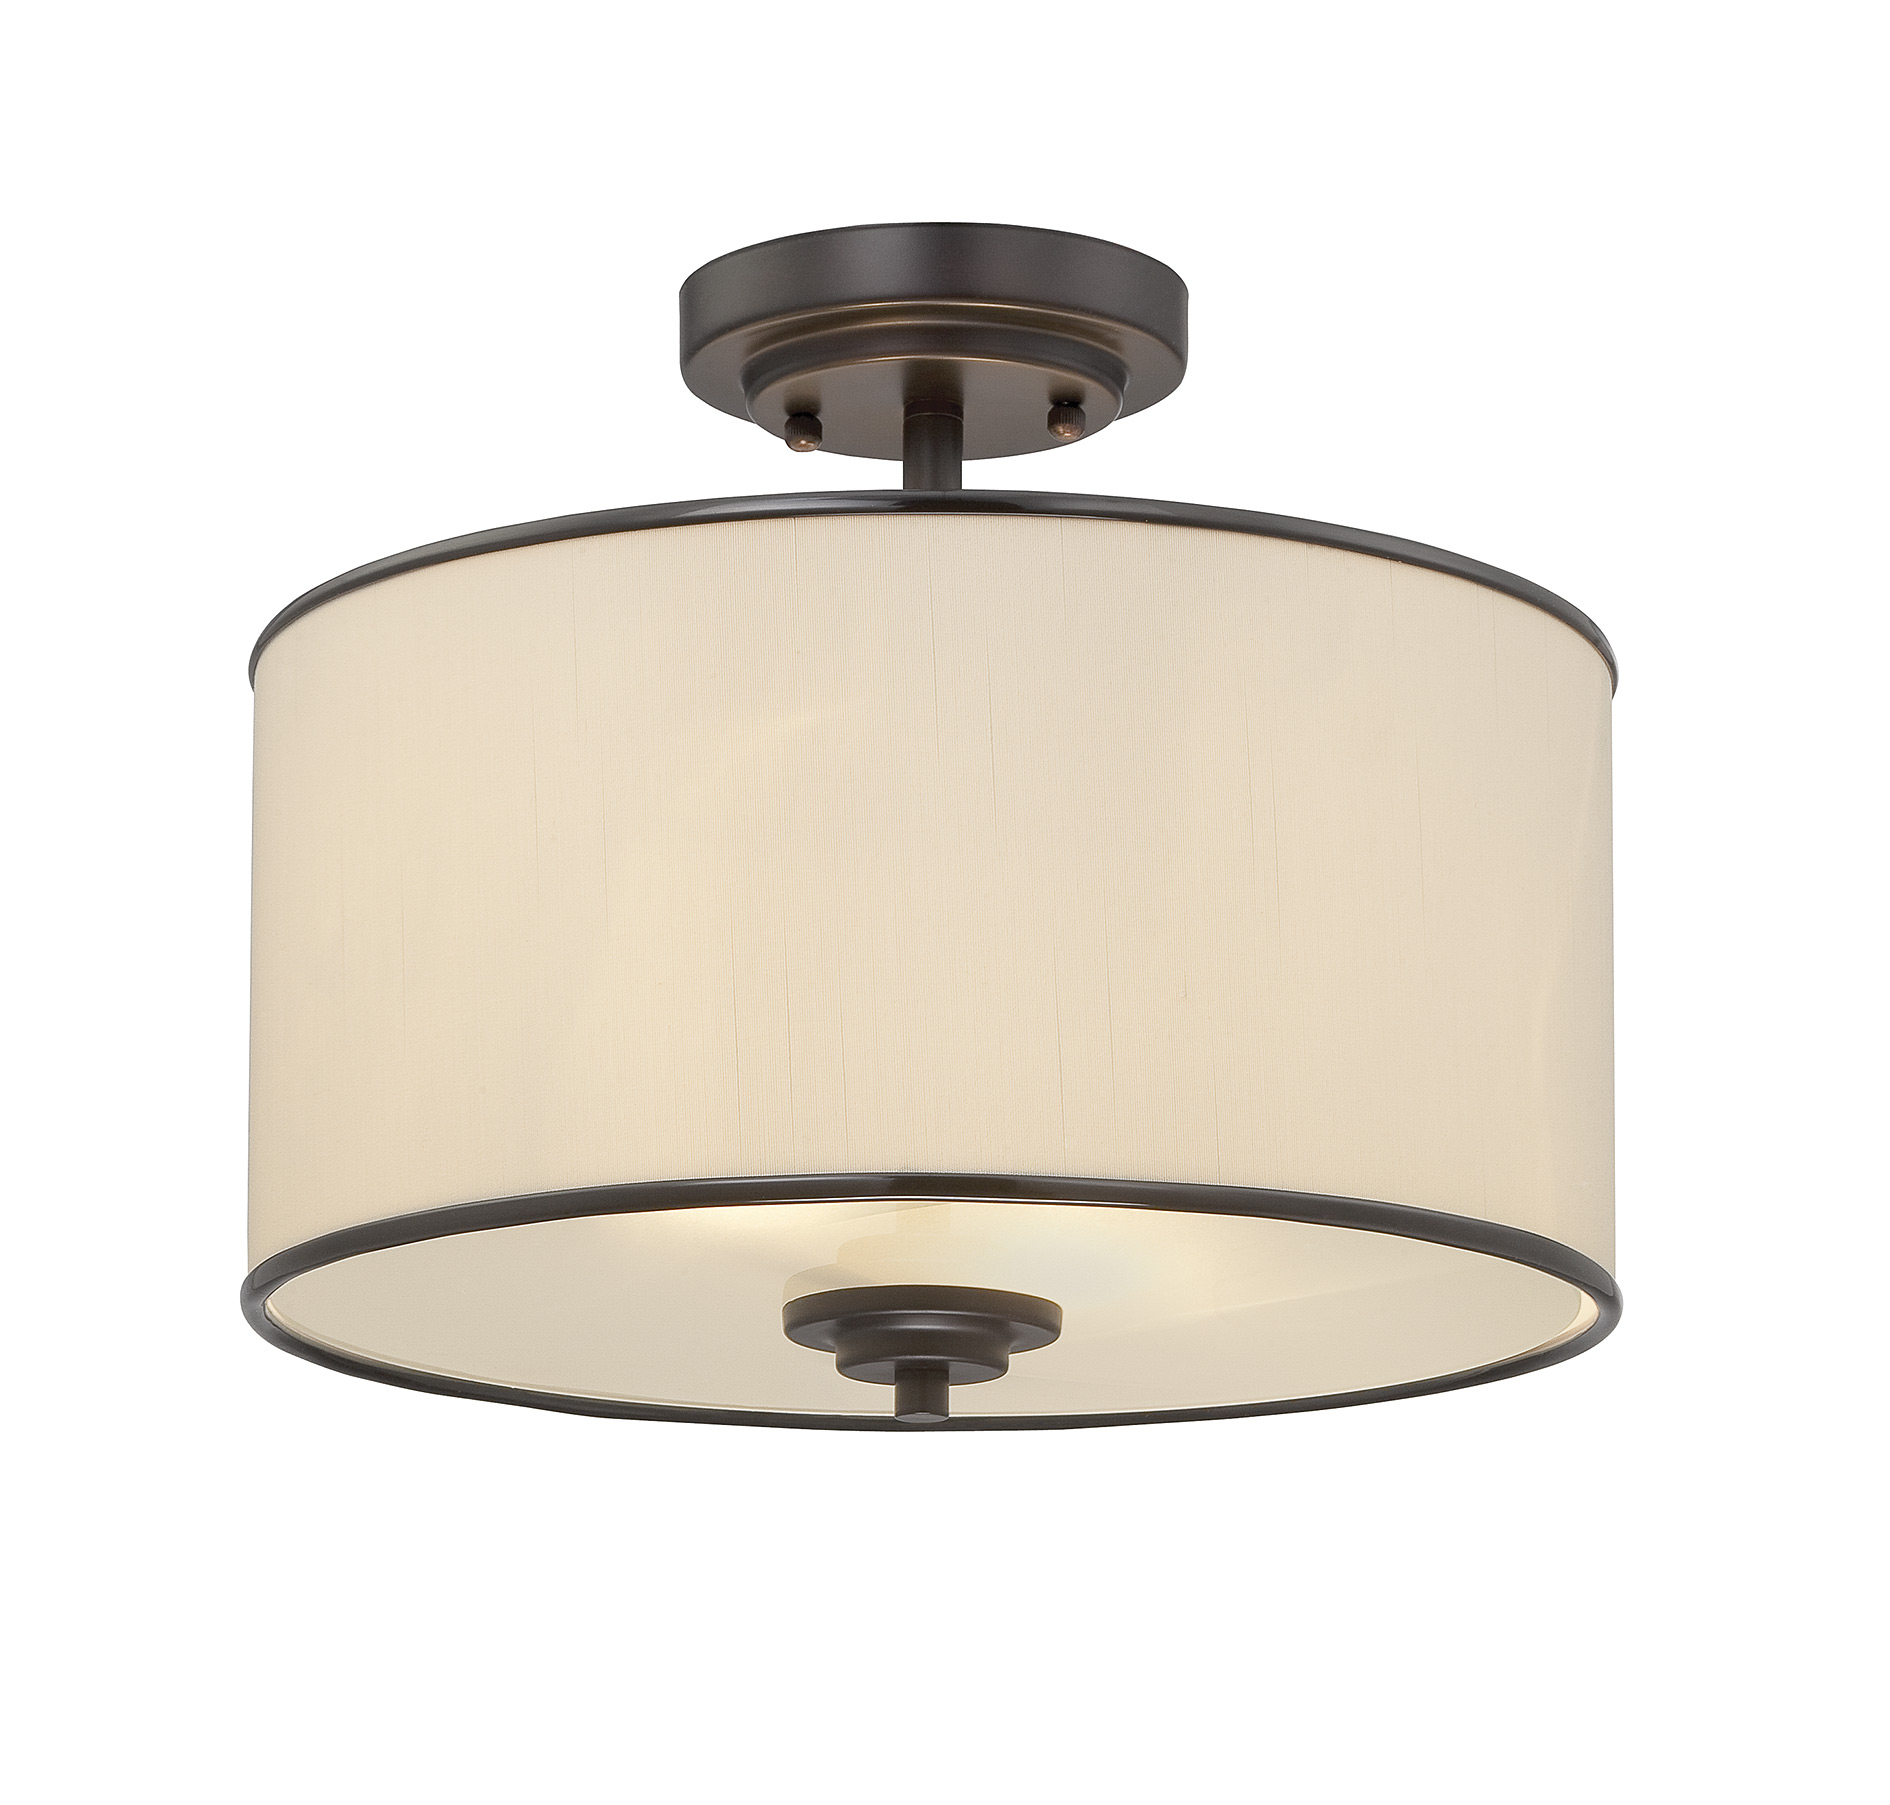 Lamp lighting classy semi flush ceiling light for home lighting best semi flush ceiling light for home lighting design with brushed nickel semi flush ceiling light aloadofball